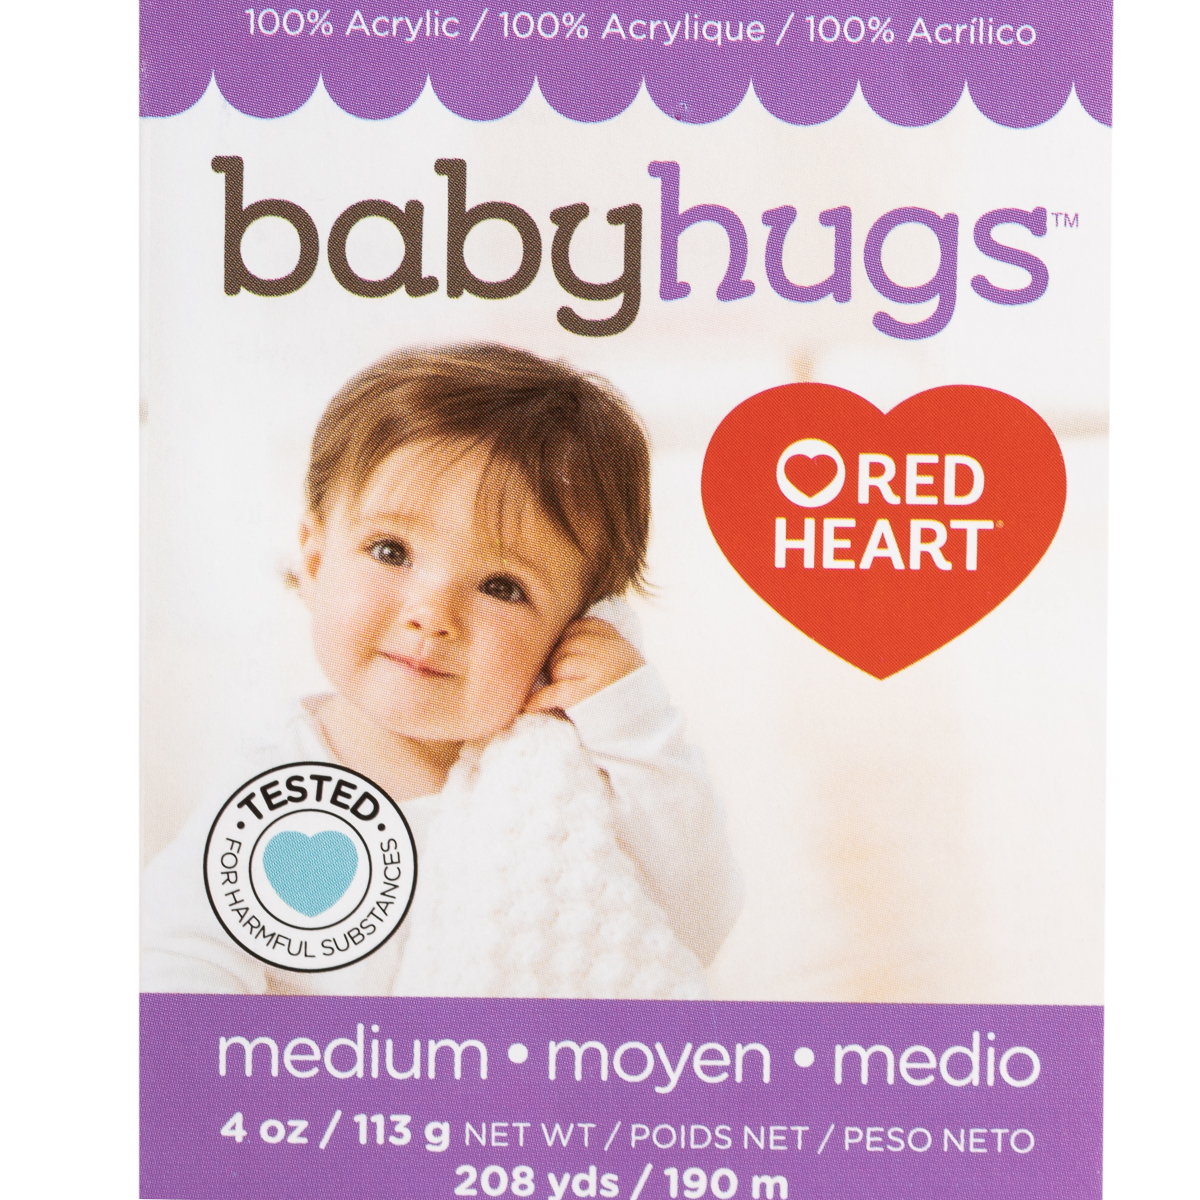 Red-Heart-Baby-Hugs-100-Acrylic-Yarn-Medium-4-Knitting-Crocheting-Skein-Soft thumbnail 21